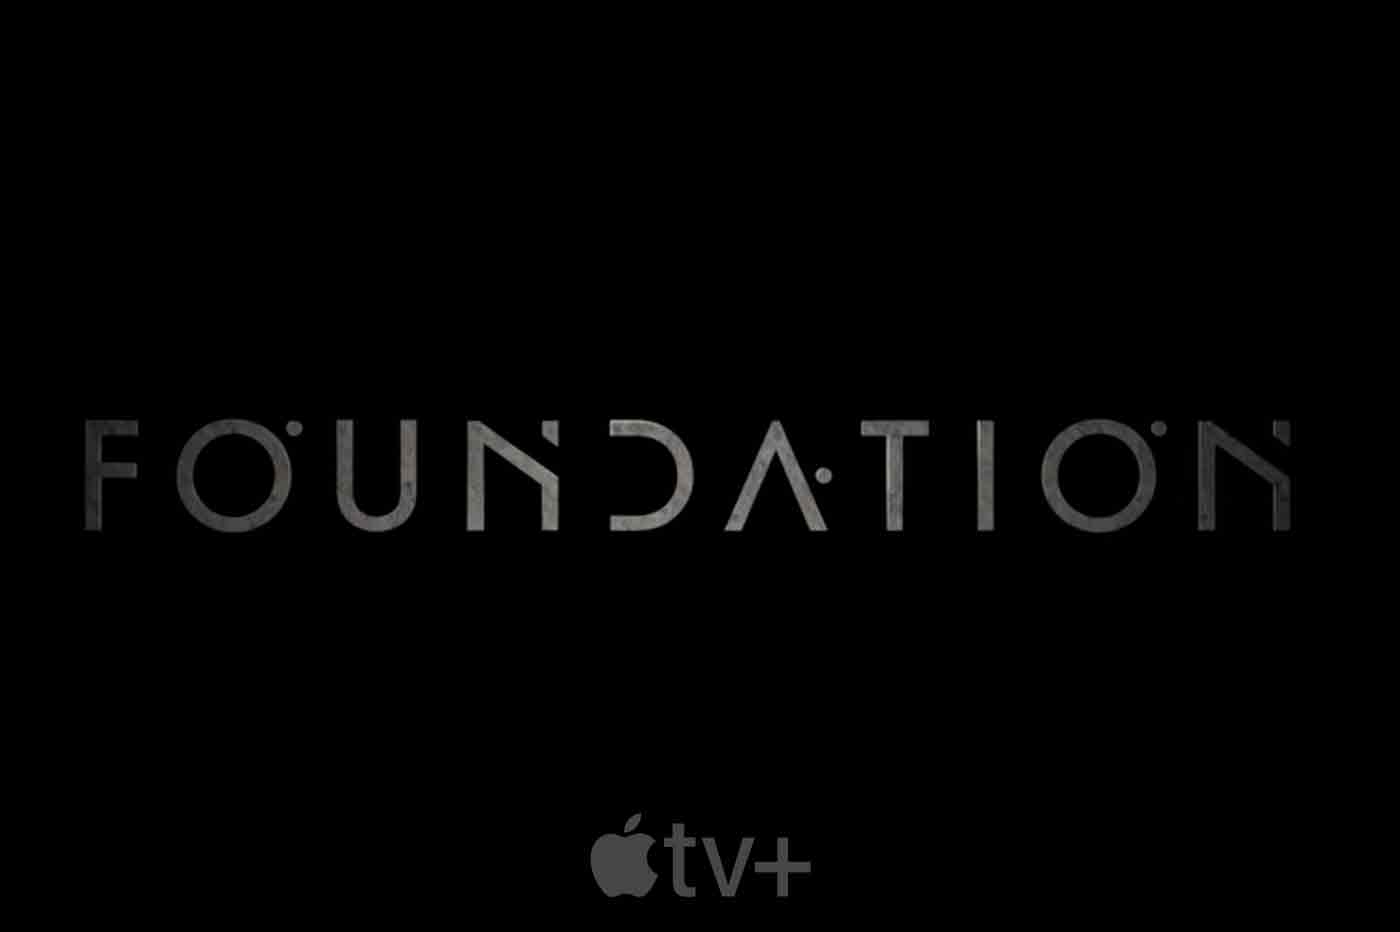 Apple TV+ Fondation